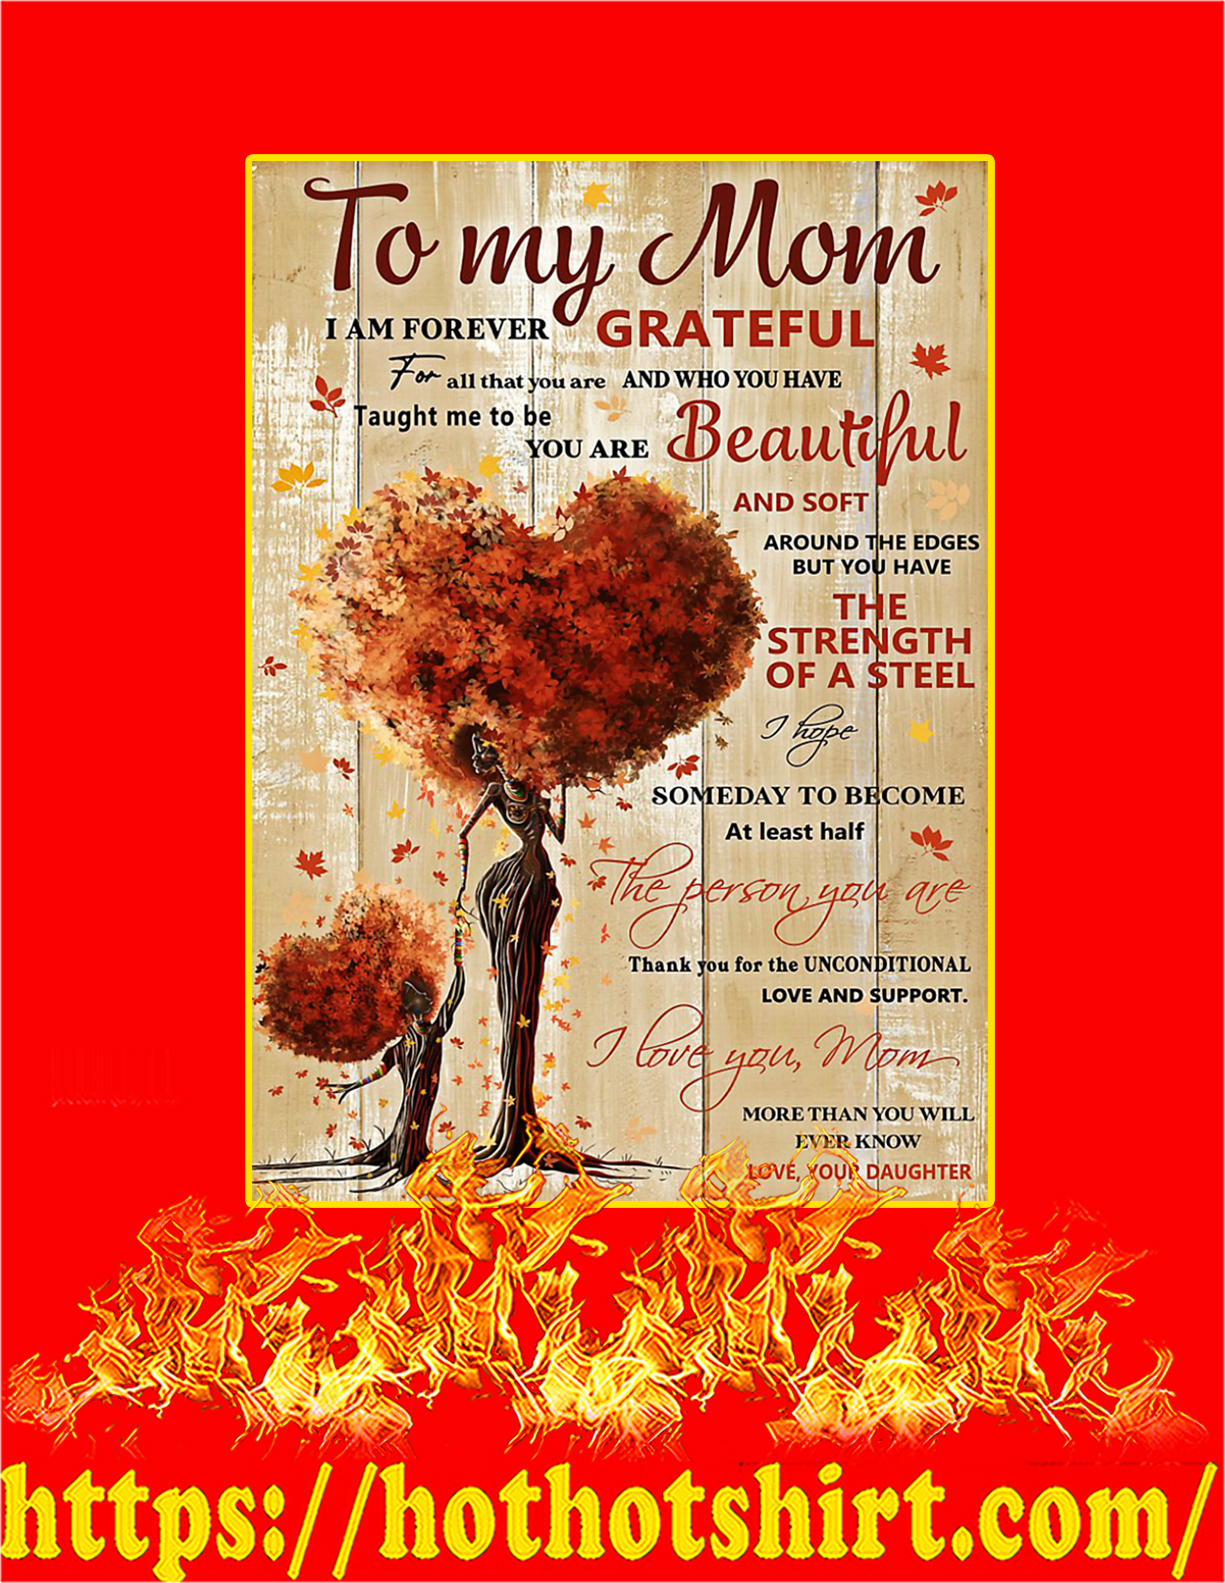 To my mom I'm forever grateful daughter poster - A4